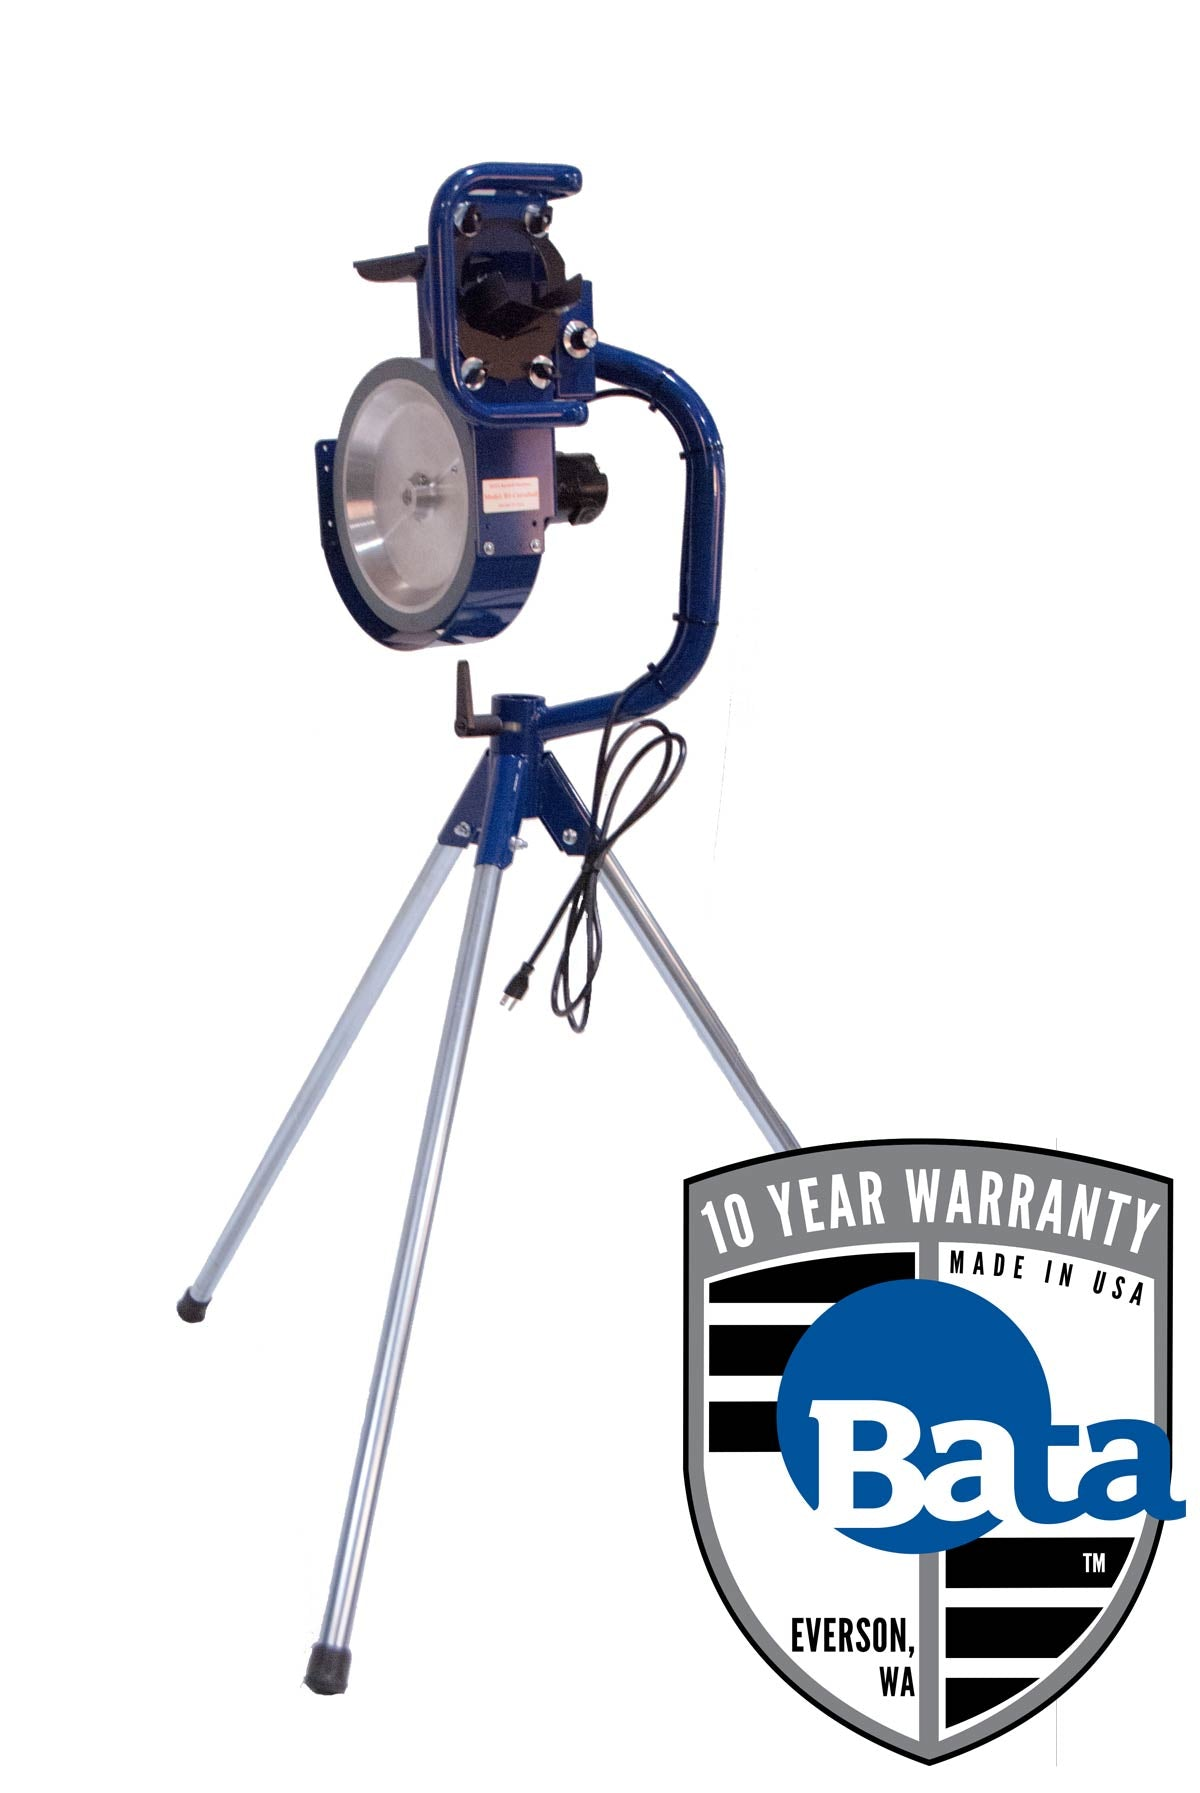 BATA B1-Curveball Pitching Machine